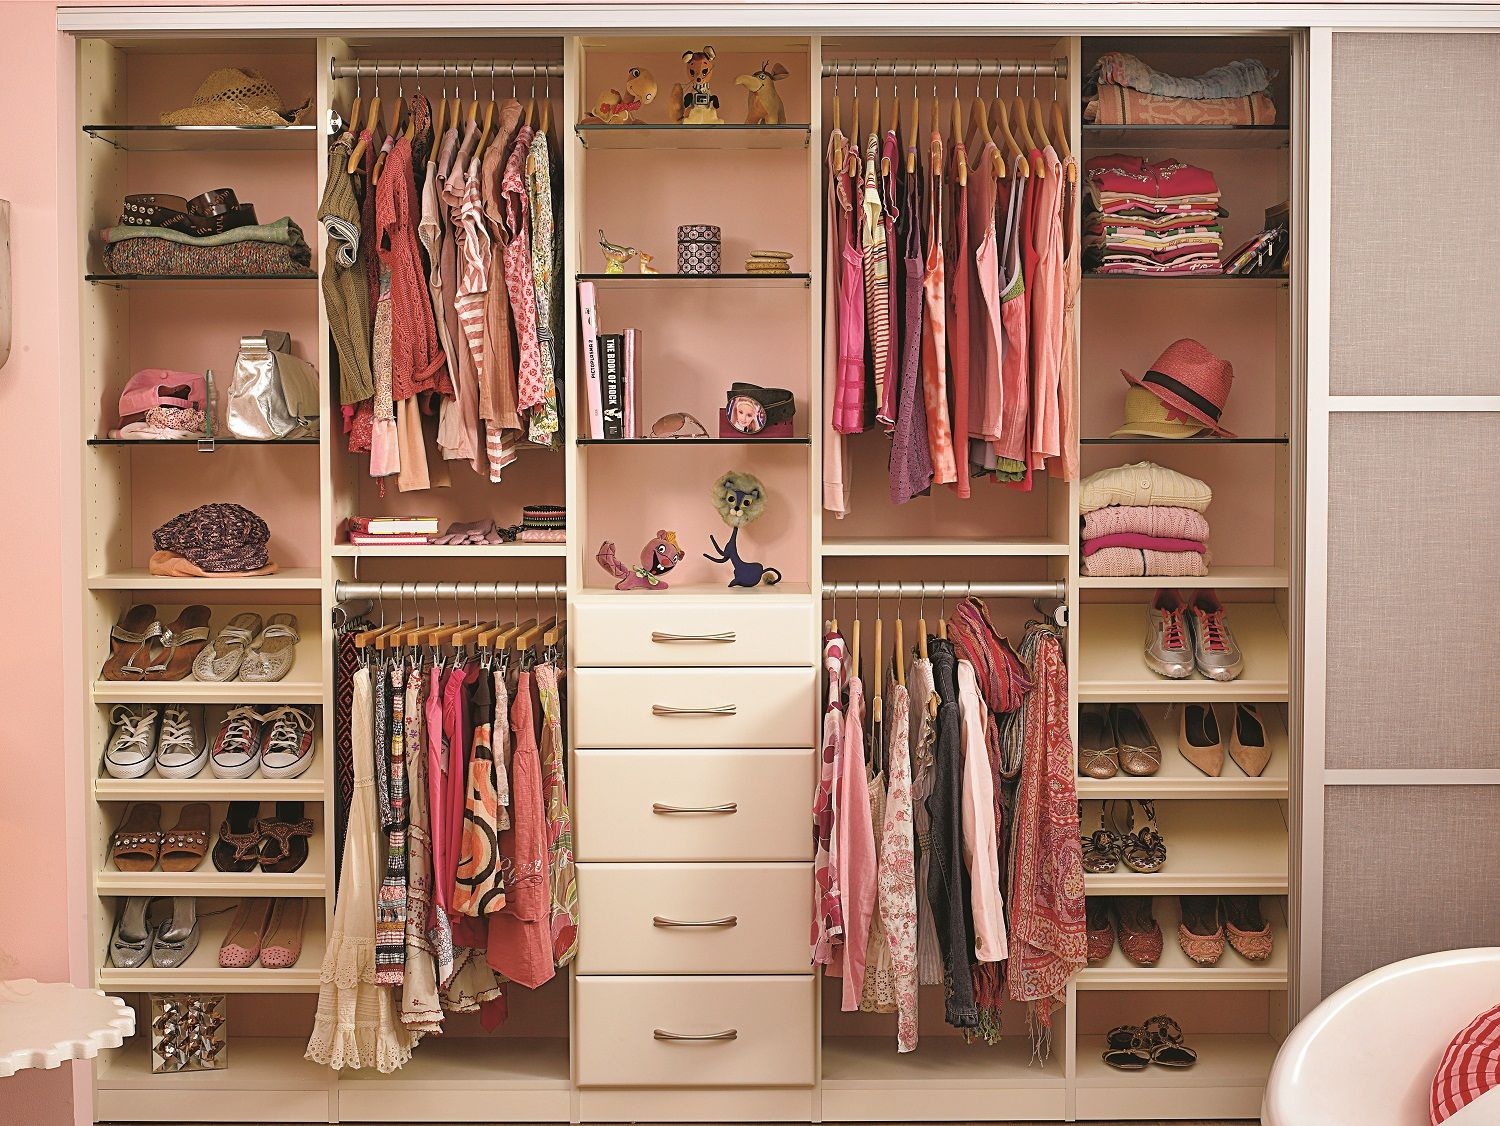 California Closets Design Consultants Are Experts At Solving For Your Family S Current Needs And With Images Small Room Design Cool Beds For Teens Teenage Girl Bedroom Diy